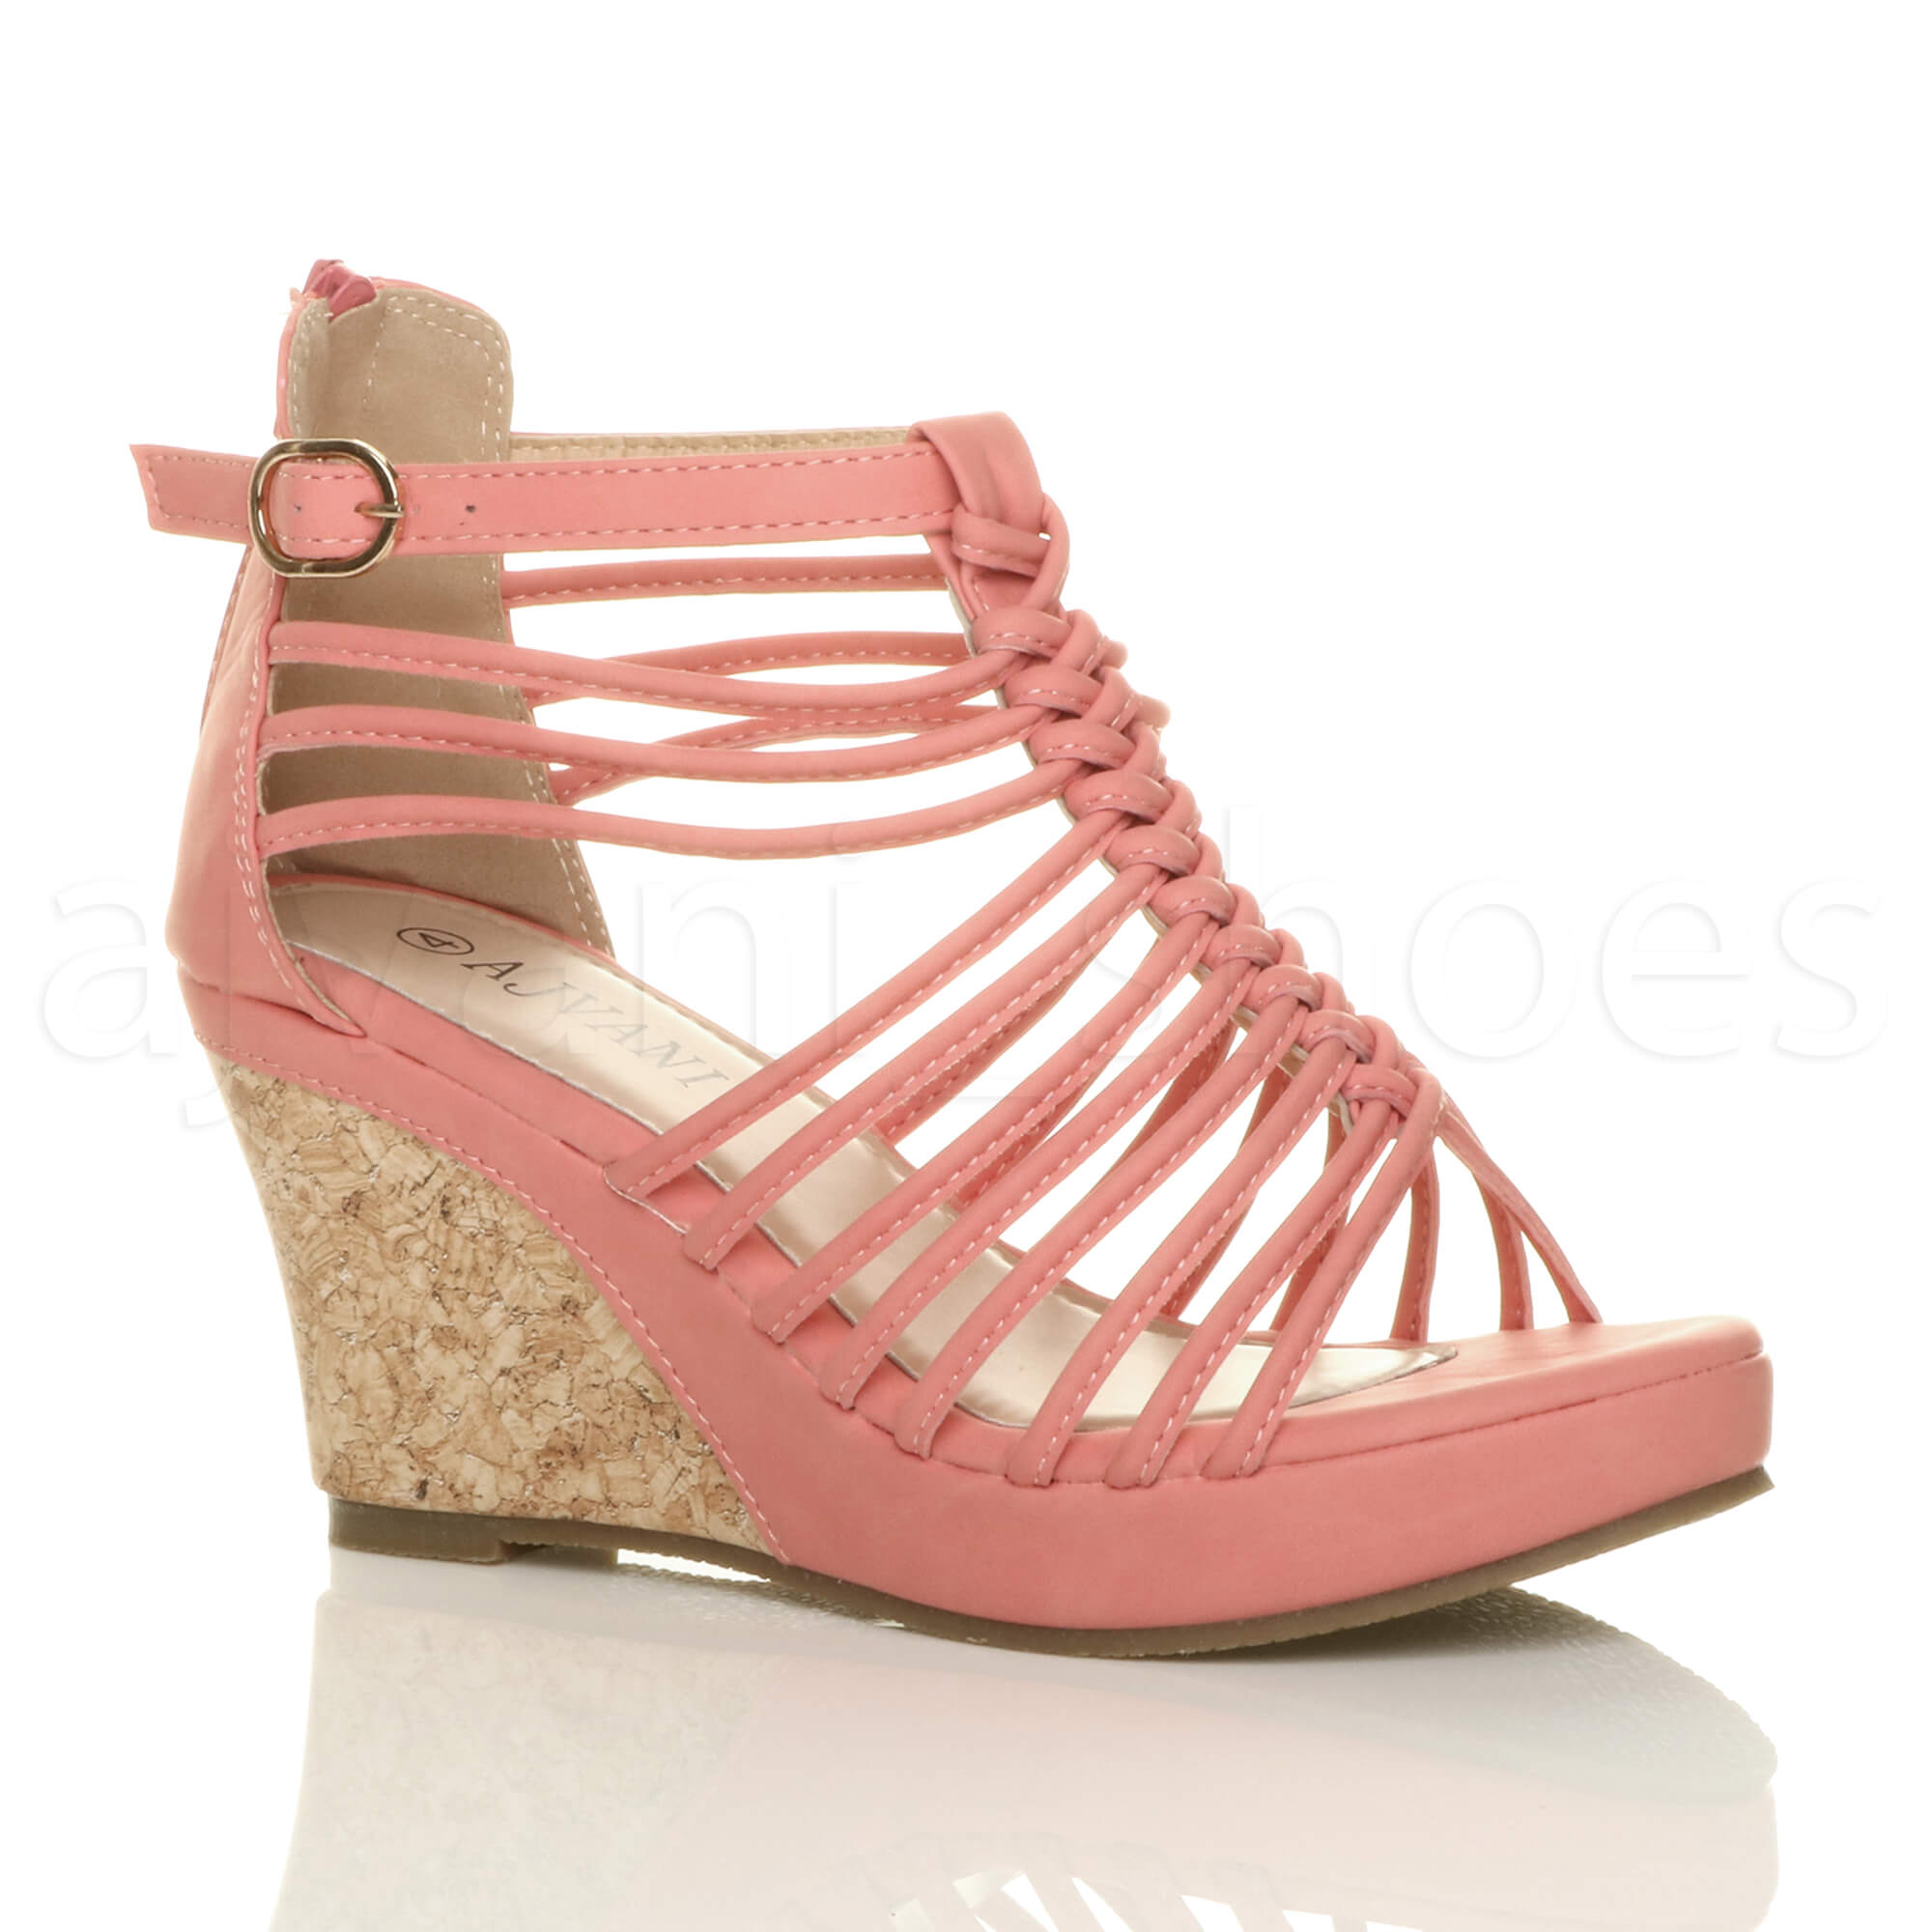 Women's High Heels Sandals Summer Shoes Chunky Heel Open Toe Lace Up Wedge Heel. Unbranded. $ Buy It Now +$ shipping. 30+ Watching. Summer High-heeled Shoes Ankle Strap Women Sandals Thick Heel Open Toe Shoes QC. Brand New. $ to $ More colors. Buy It Now. Free Shipping.